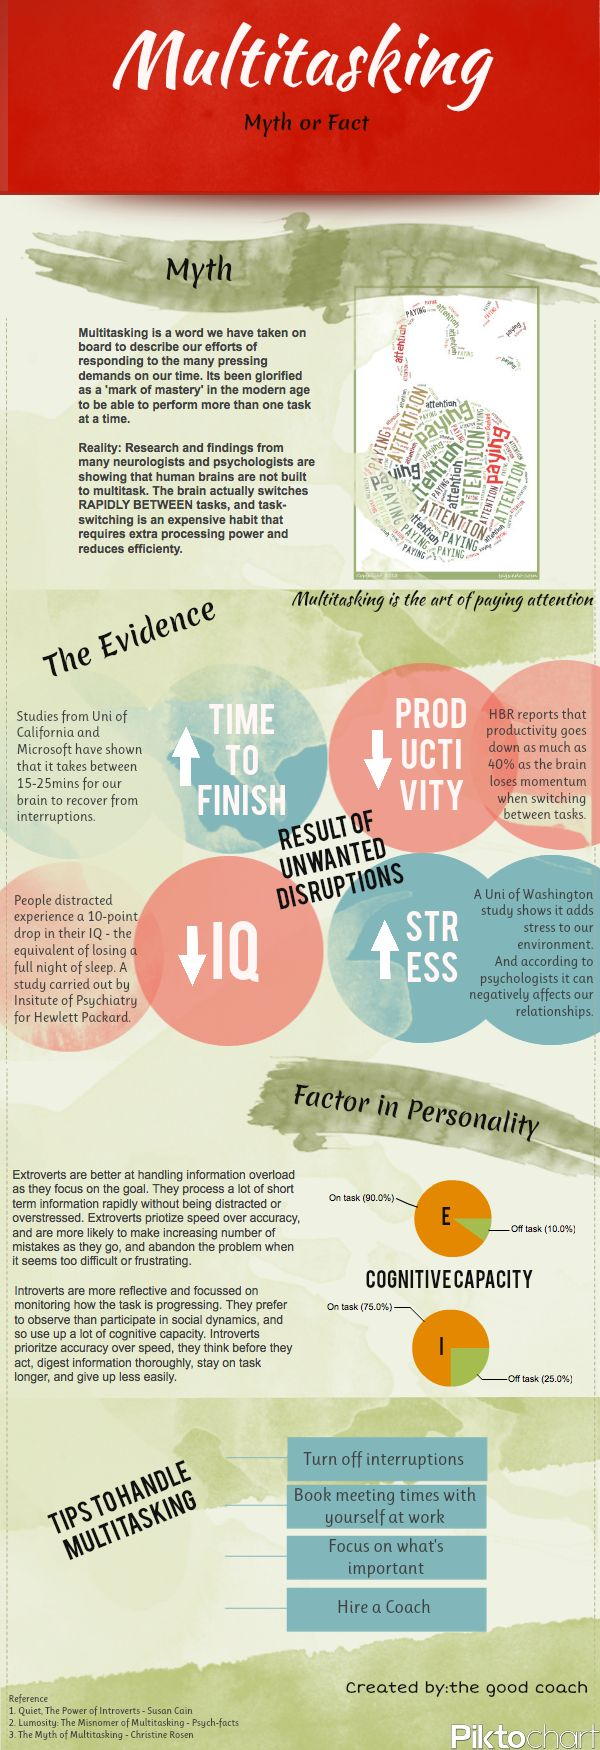 Multitasking is a useful and extremely powerful skill for monitoring multiple sources of information in our information-saturated lives for e.g. datam: Fact Infographic, Bad Infographic, Physical Facts Psychology, Multitasking Myth Or Fact, Fun Facts, Allaround Infographic, Things, Multitasking Infographic, Business